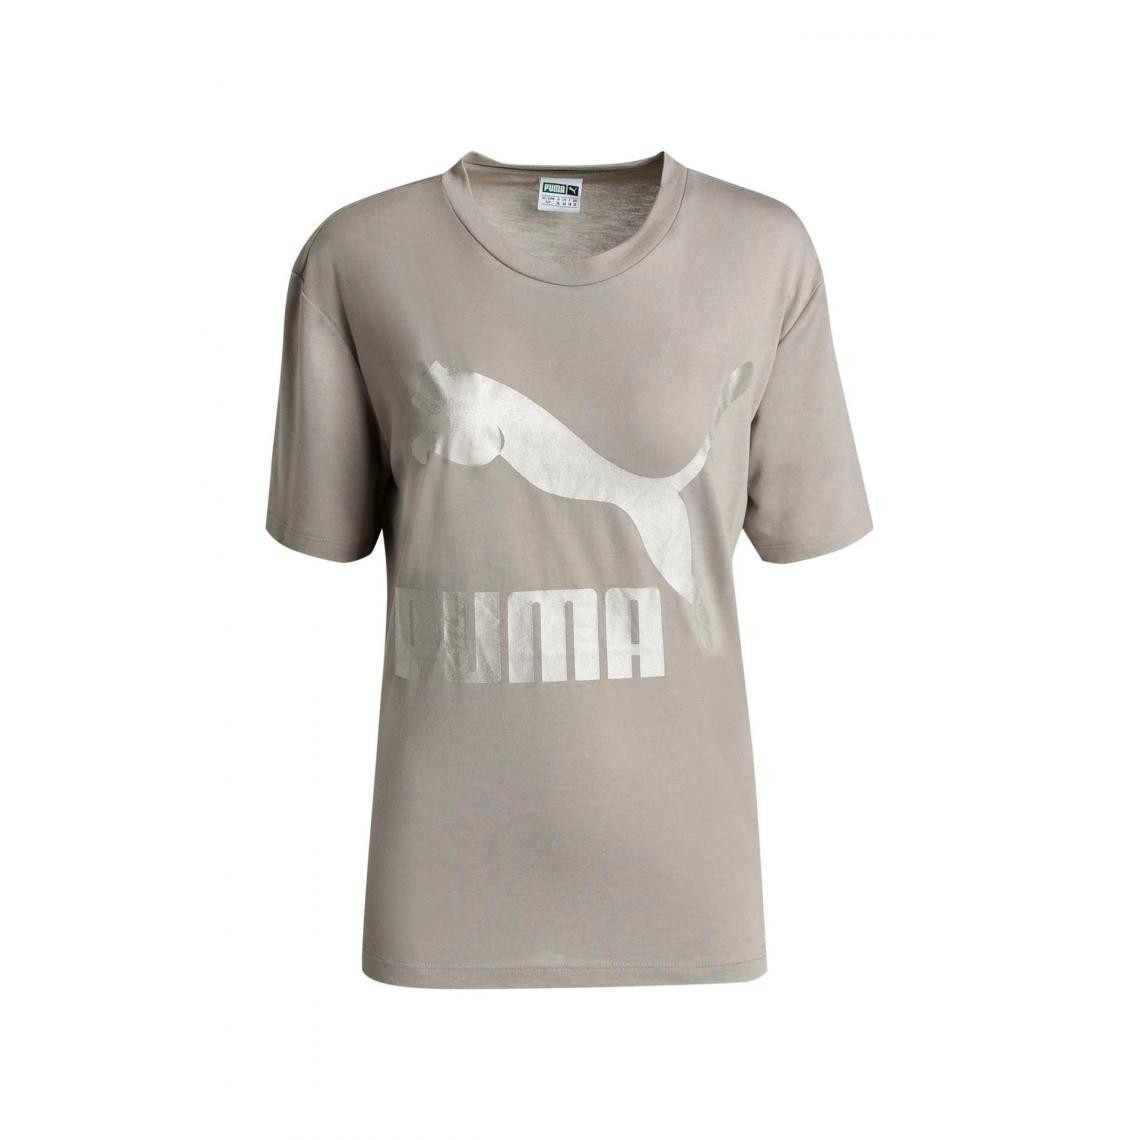 Tee shirt manches courtes col rond PUMA femme Taupe